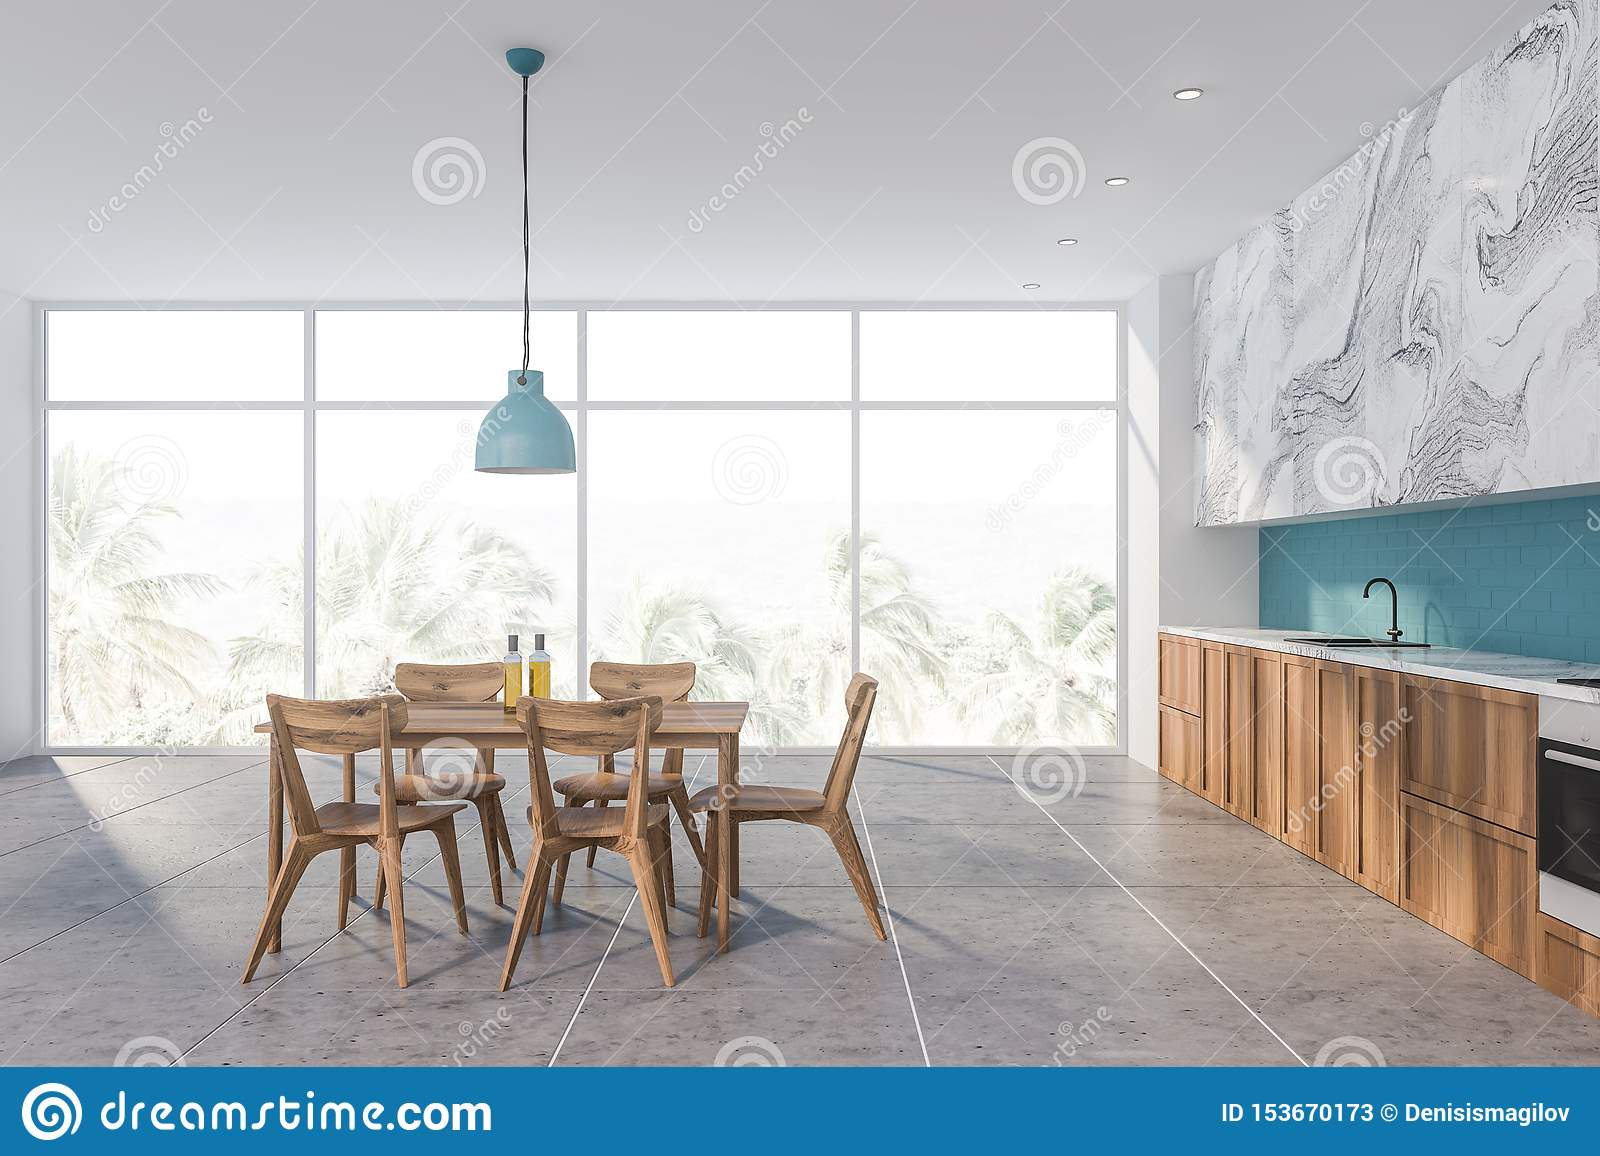 Blue And White Marble Kitchen With Table Stock Illustration Illustration Of Comfortable Blue 153670173